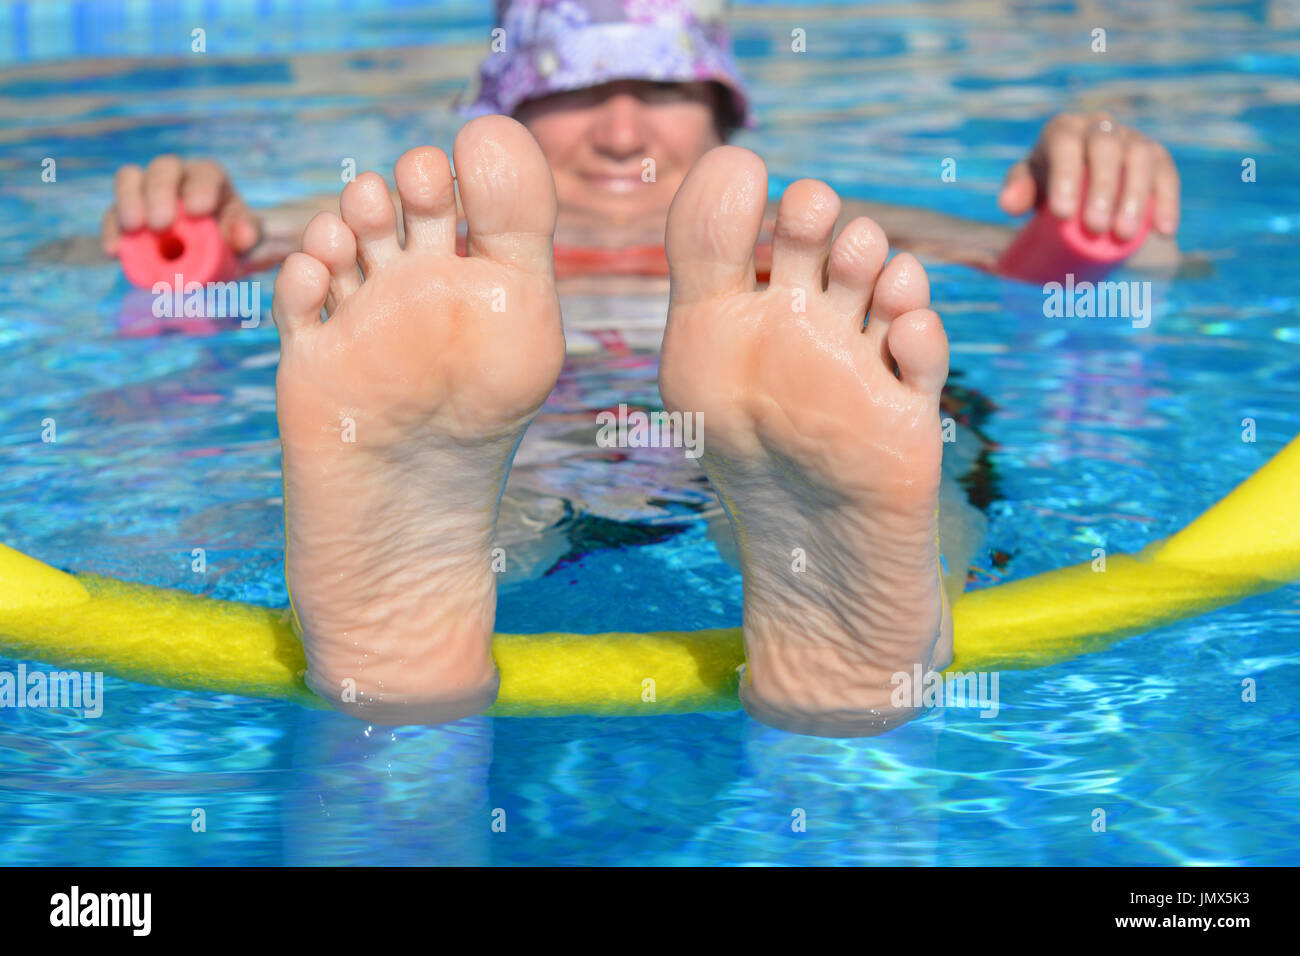 Keeping cool! Woman floating on two pool noodles in a swimming pool. Just chilling. - Stock Image